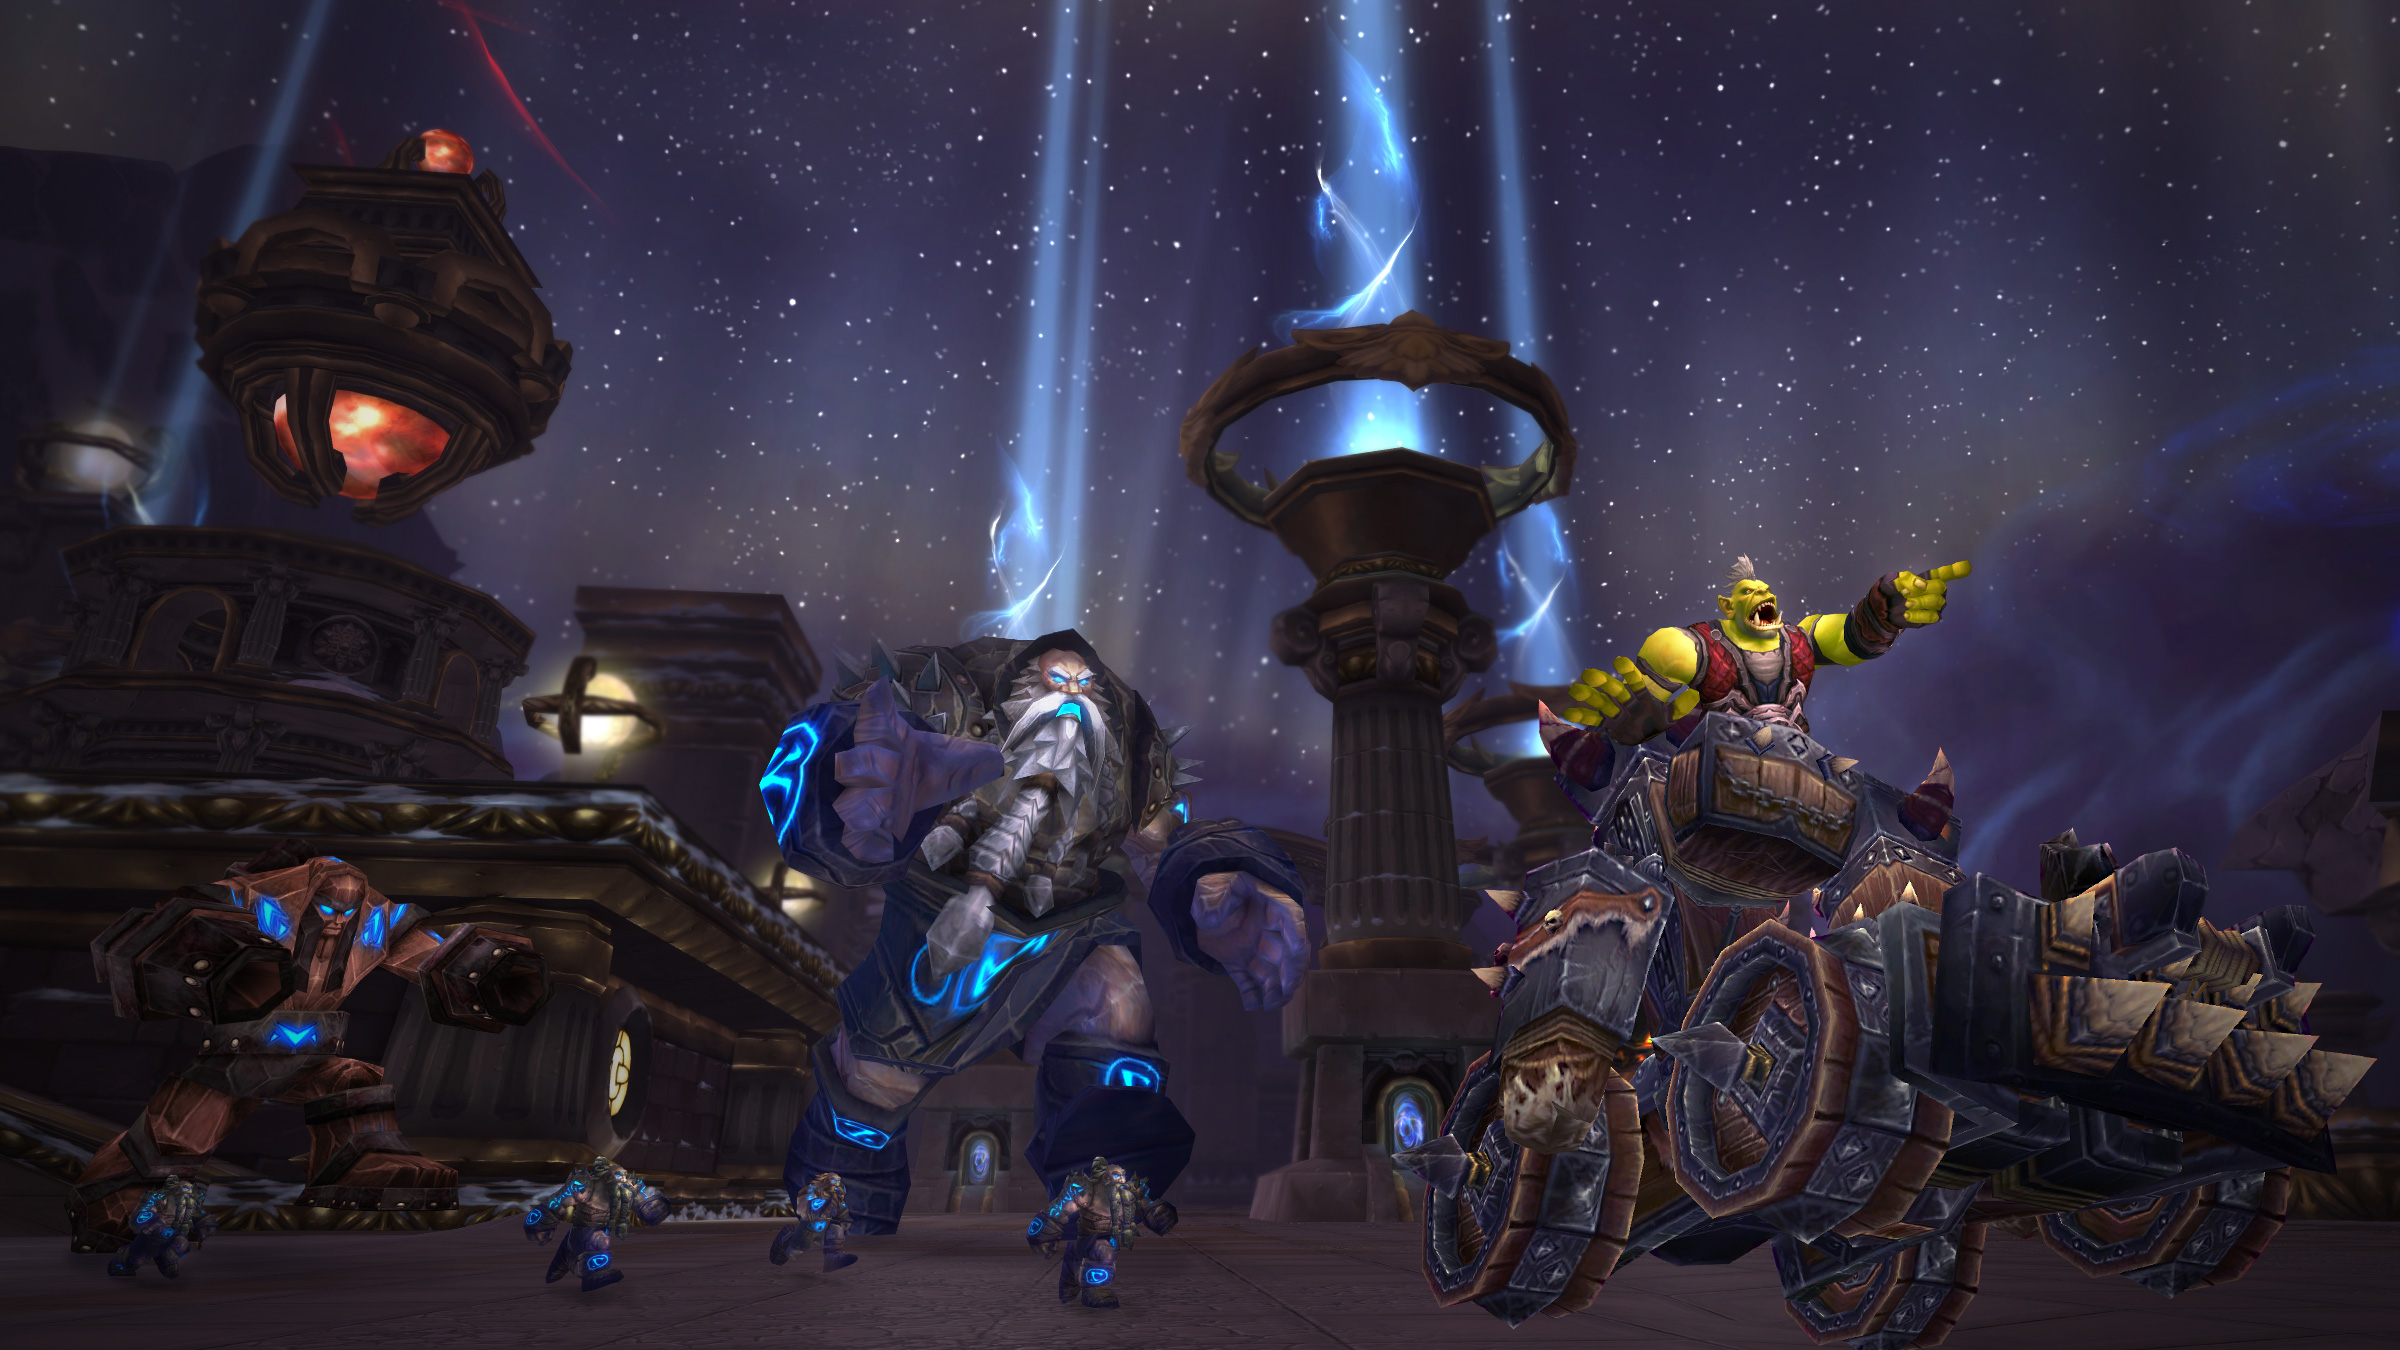 Wrath of the Lich King Timewalking Returns